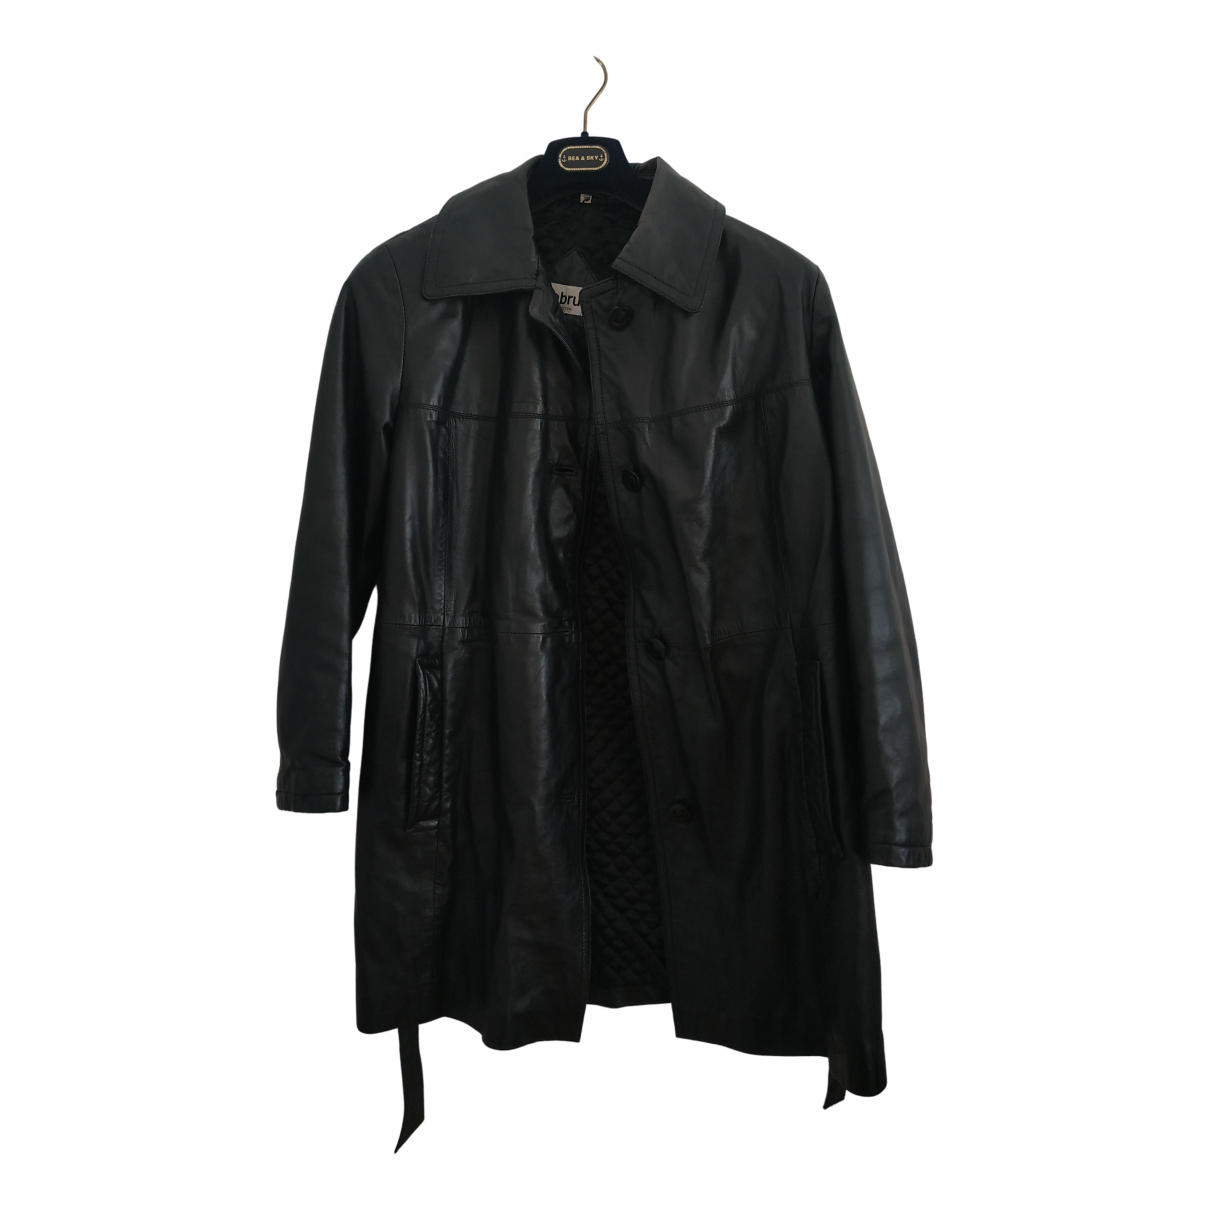 Mabrun N Black Leather Leather jacket for Women 46 IT